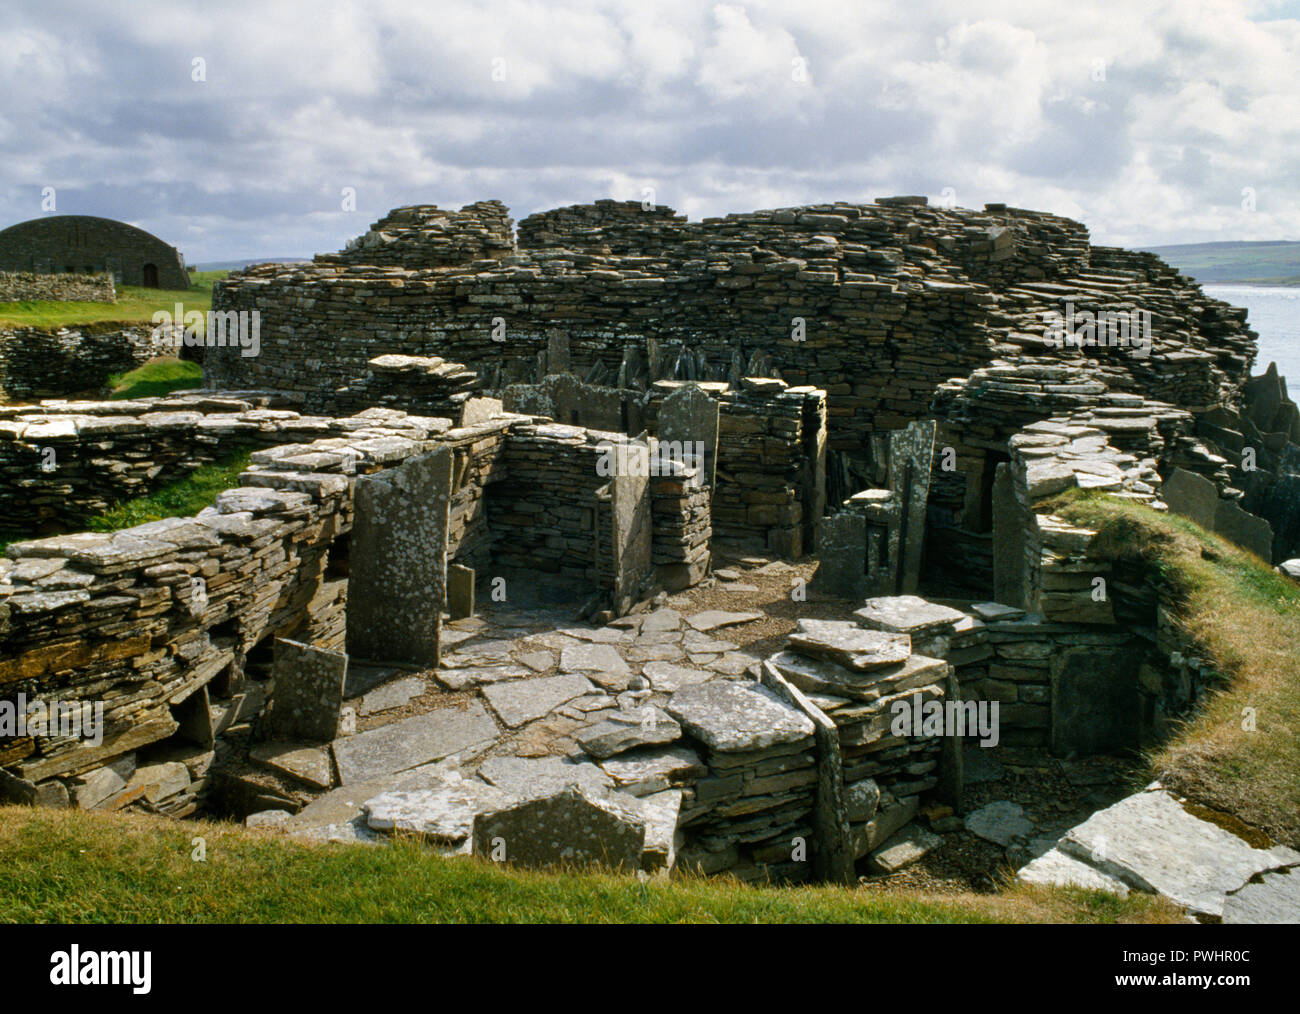 View S of later houses built around Midhowe Iron Age broch tower (rear centre) on the SW coast of Rousay island, Orkney, Scotland, UK. - Stock Image